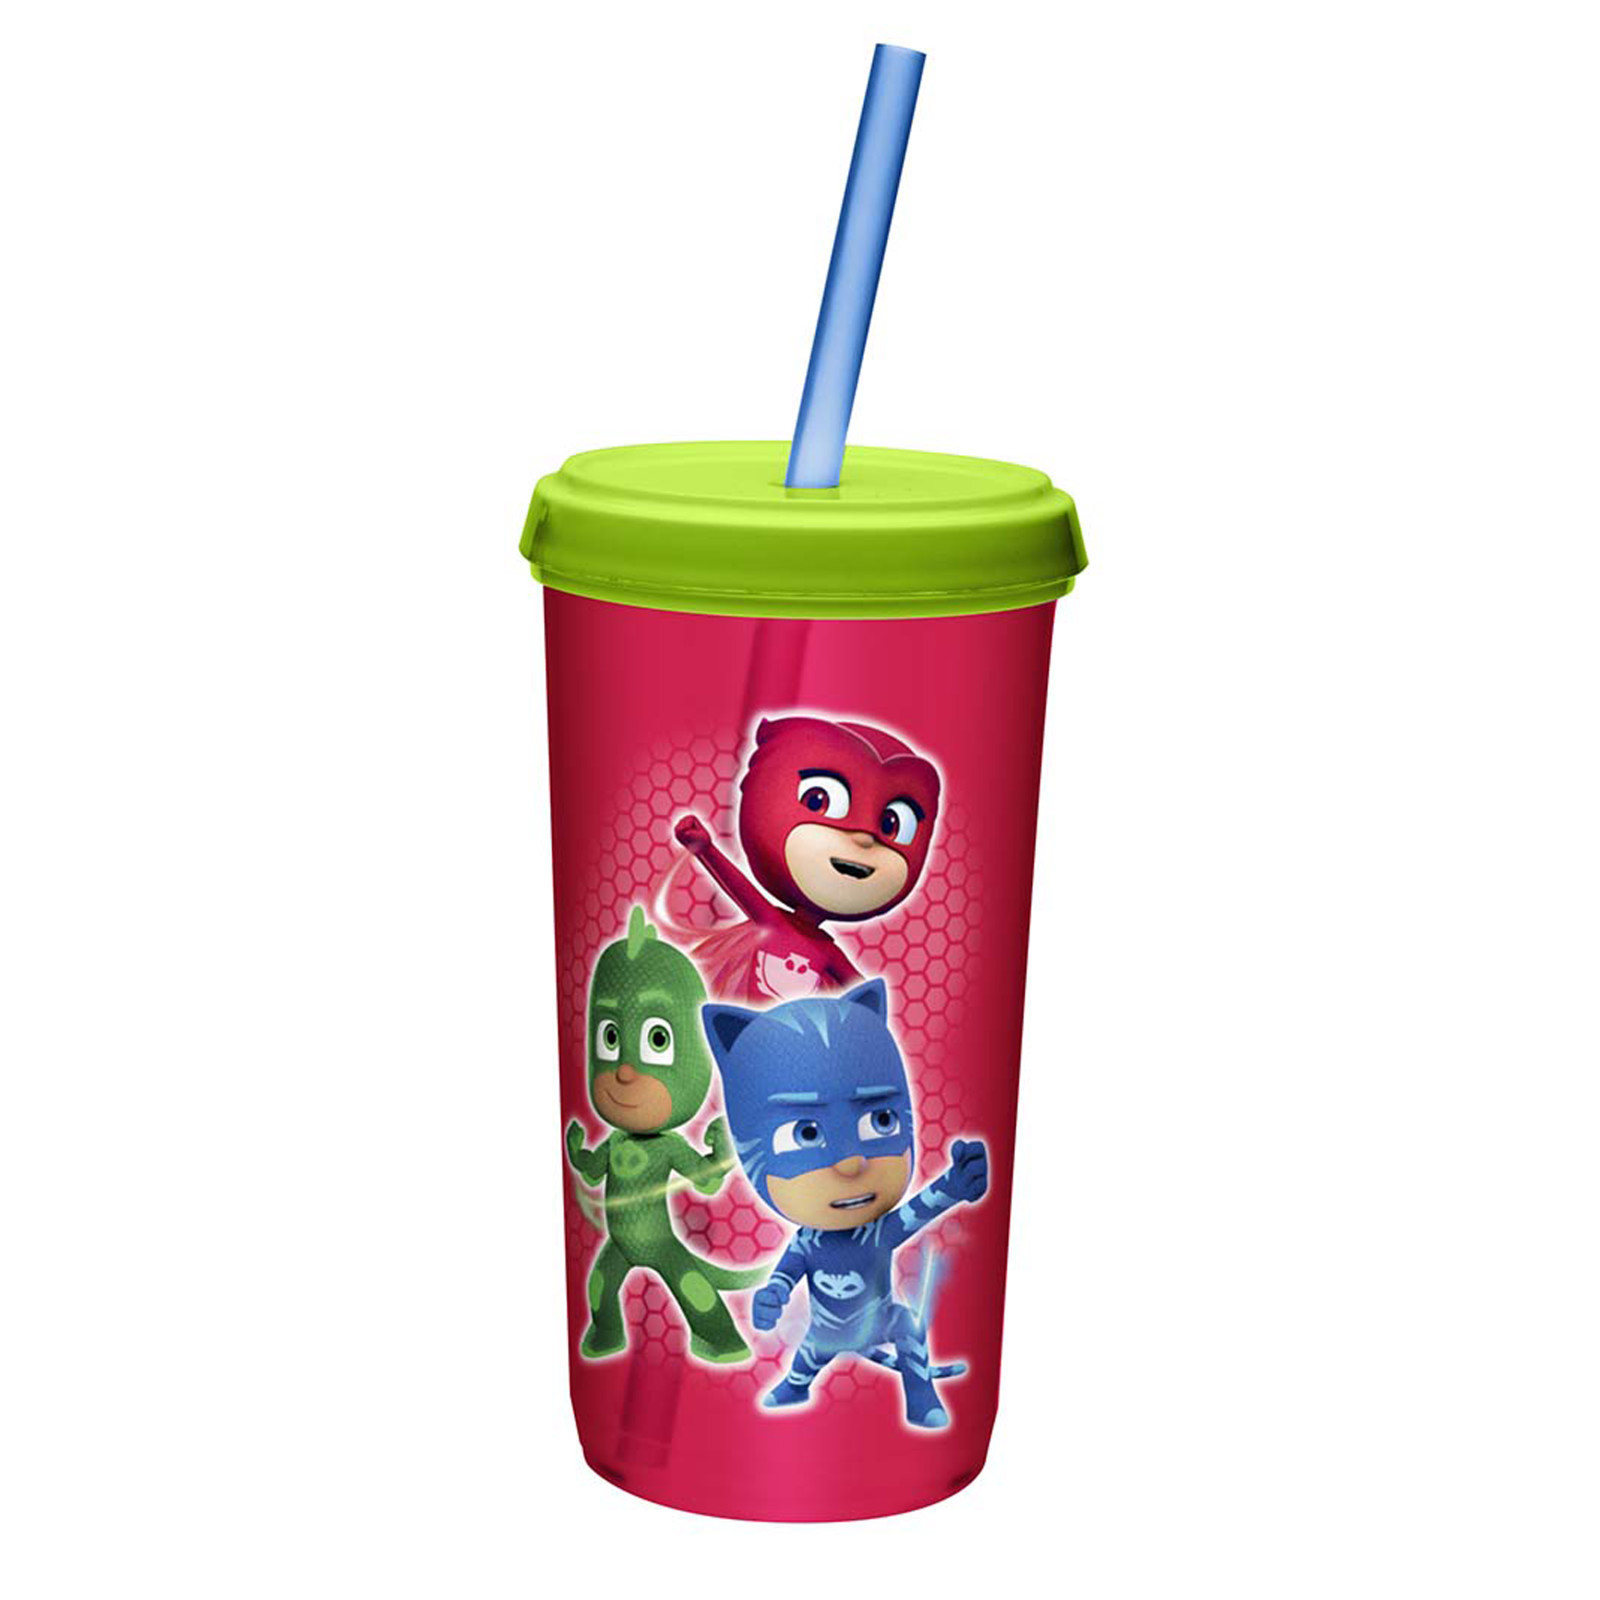 PJMA-0170 PJ-Masks-Plastic-Cups-with-Lid-zak-designs-02-hero